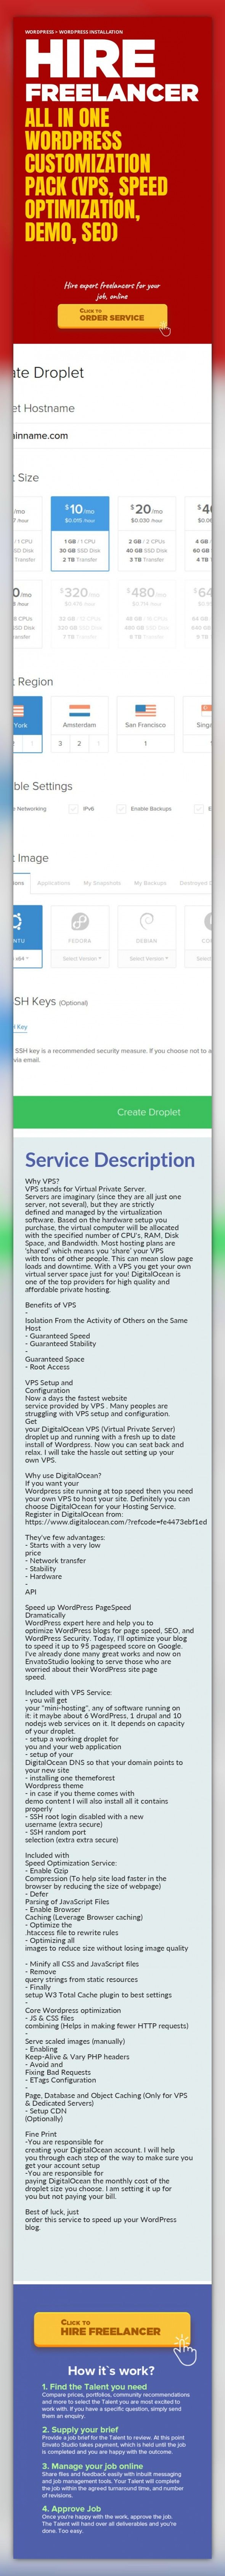 All in One WordPress Customization Pack (VPS, Speed Optimization, Demo, SEO) WordPress, WordPress Installation   Why VPS?  VPS stands for Virtual Private Server. Servers are imaginary (since they are all just one server, not several), but they are strictly defined and managed by the virtualization software. Based on the hardware setup you purchase, the virtual computer will be allocated with the s...